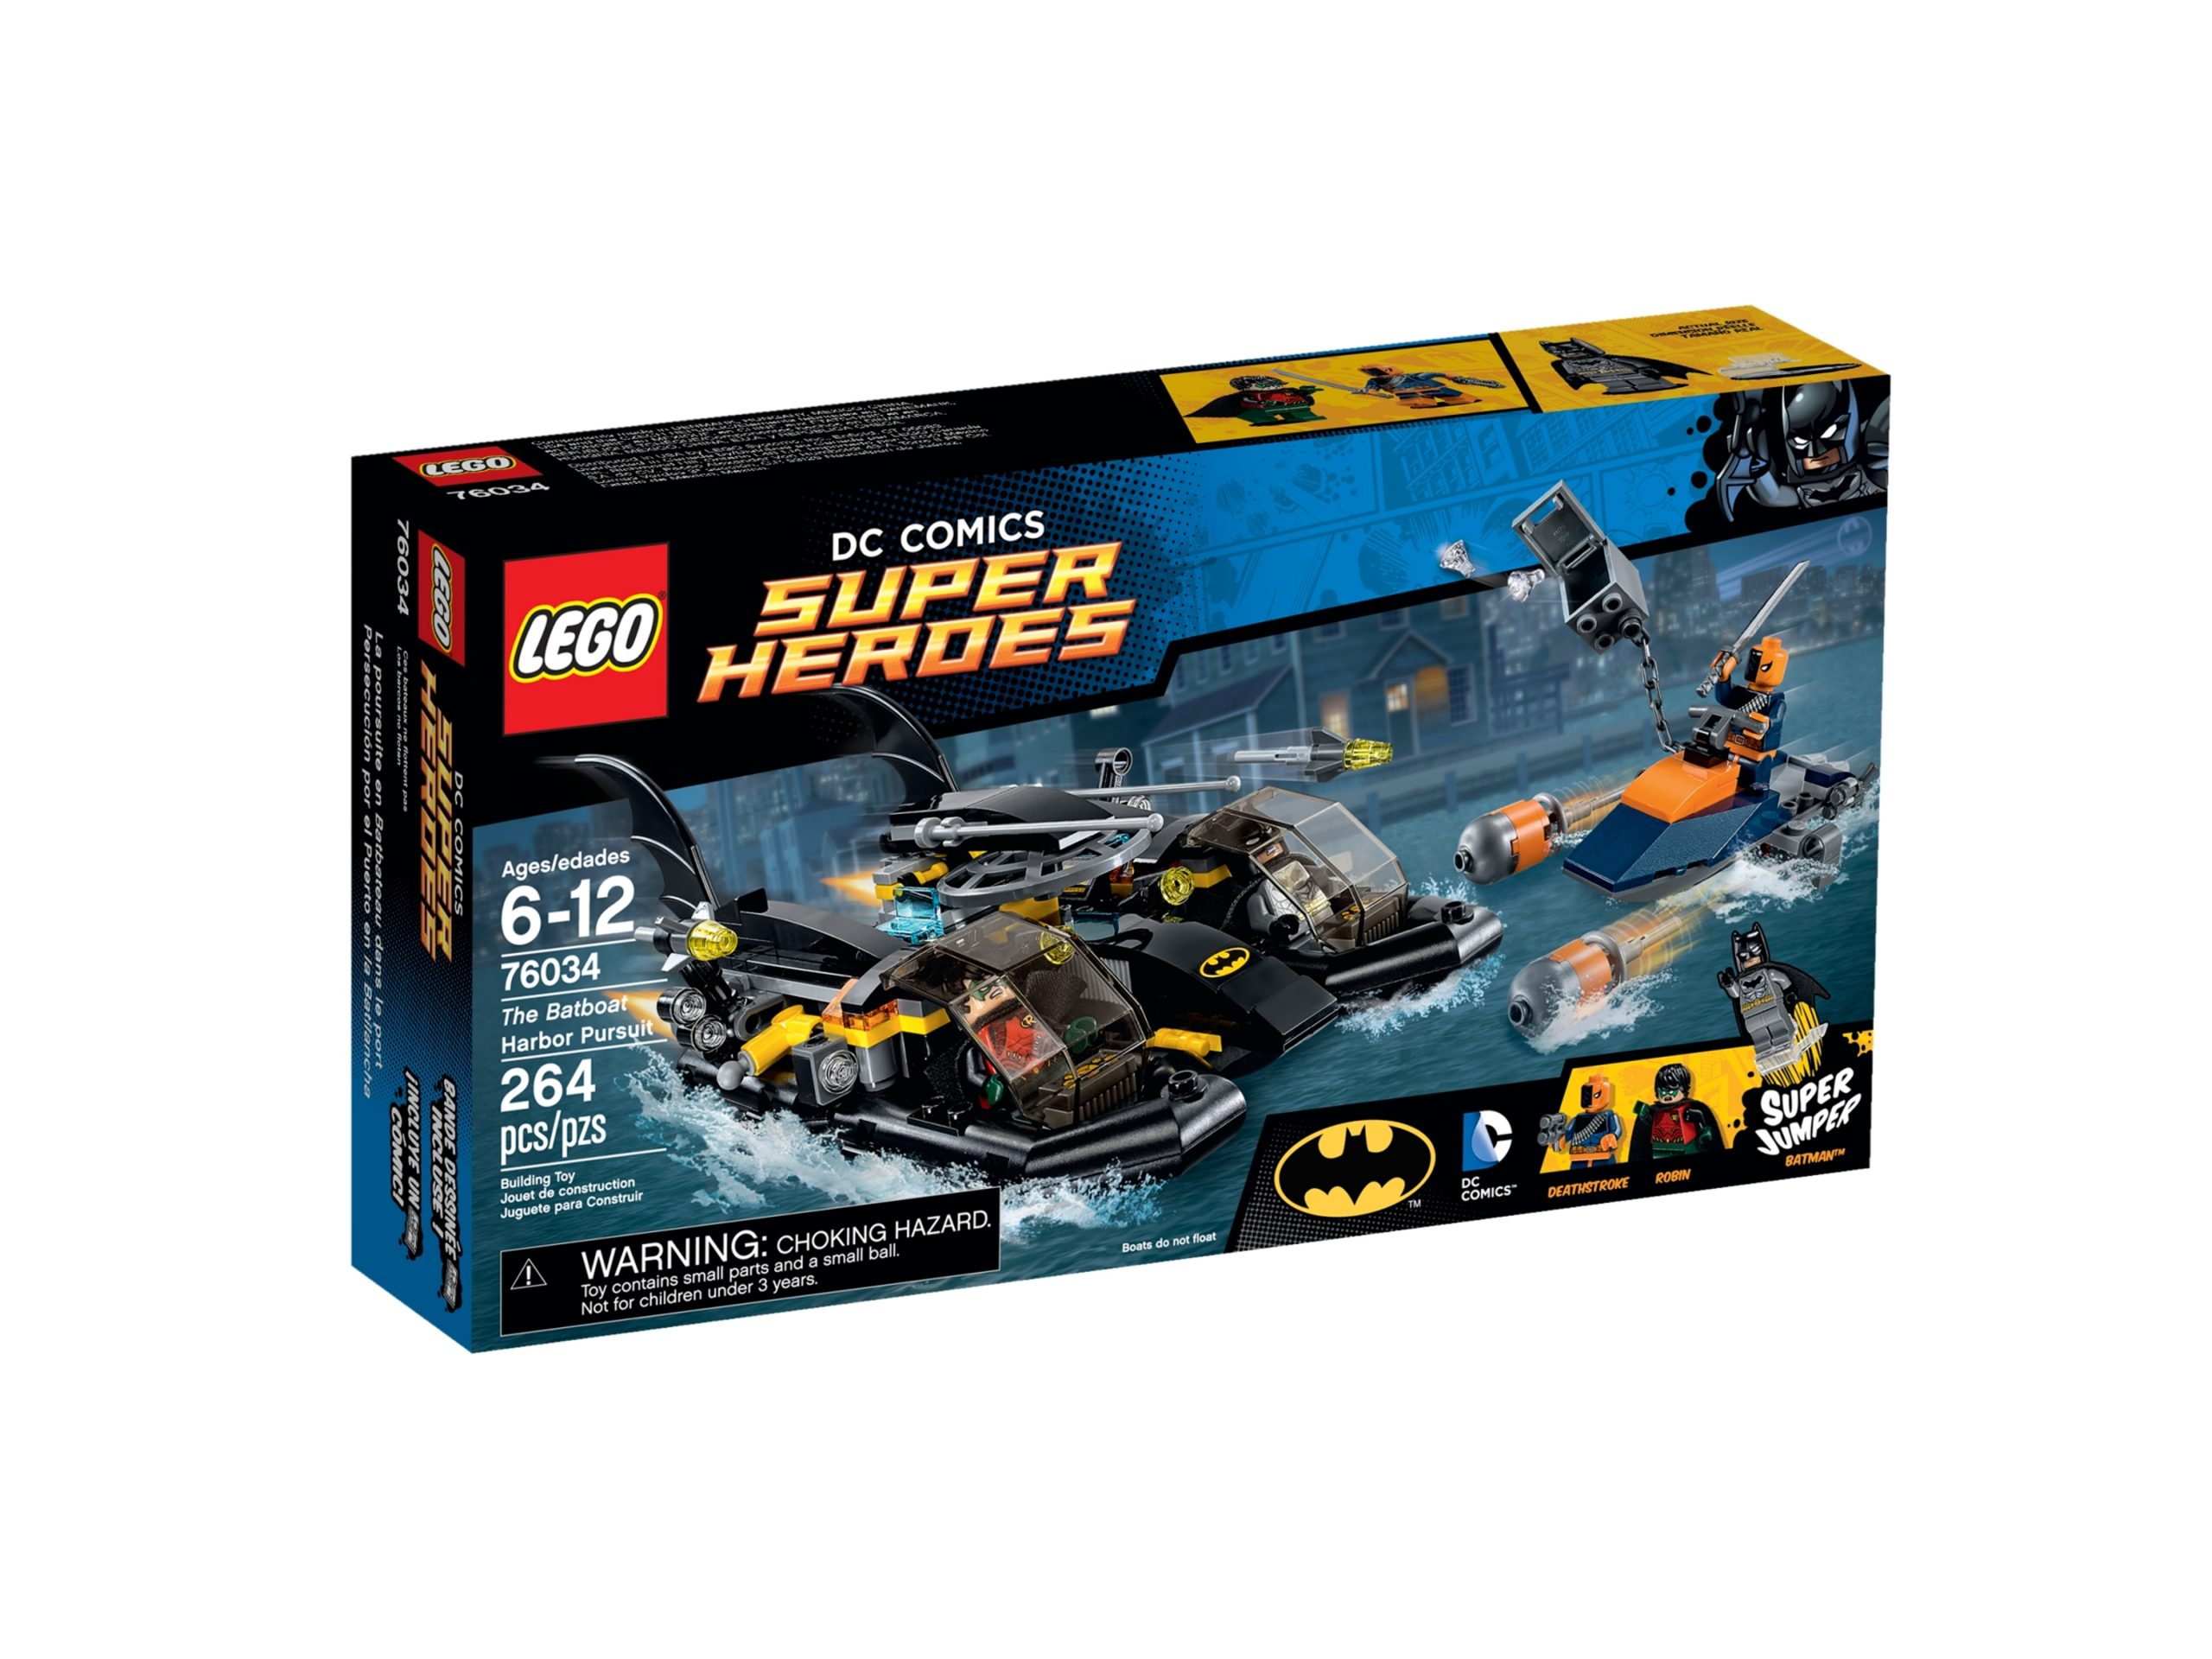 lego 76034 the batboat harbor pursuit scaled